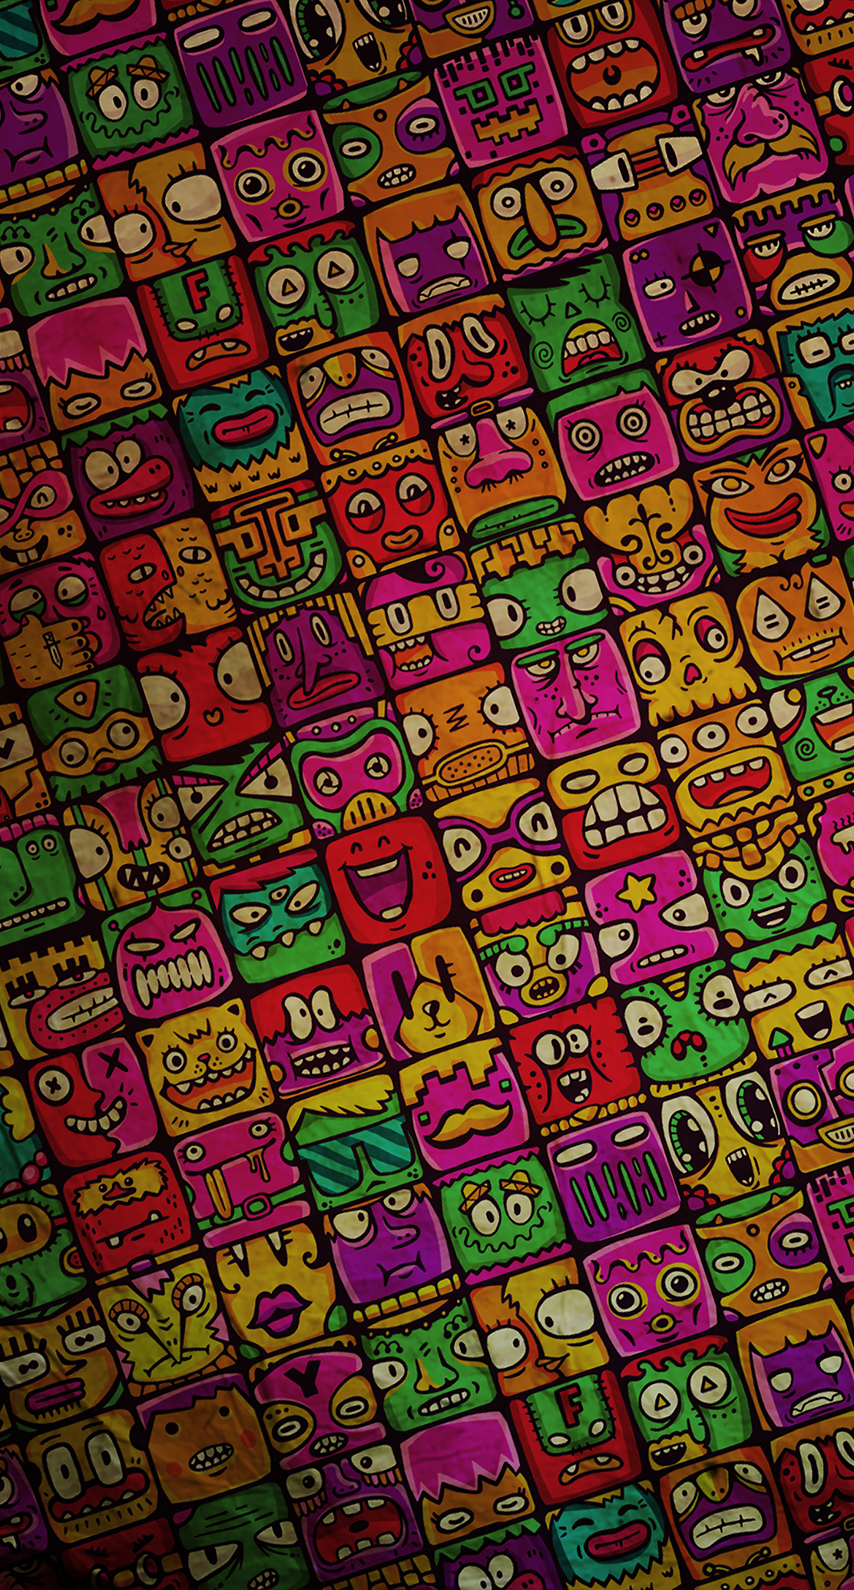 background, wallpaper, desktop, illustration, shape, decoration, color, motley, element, mosaic